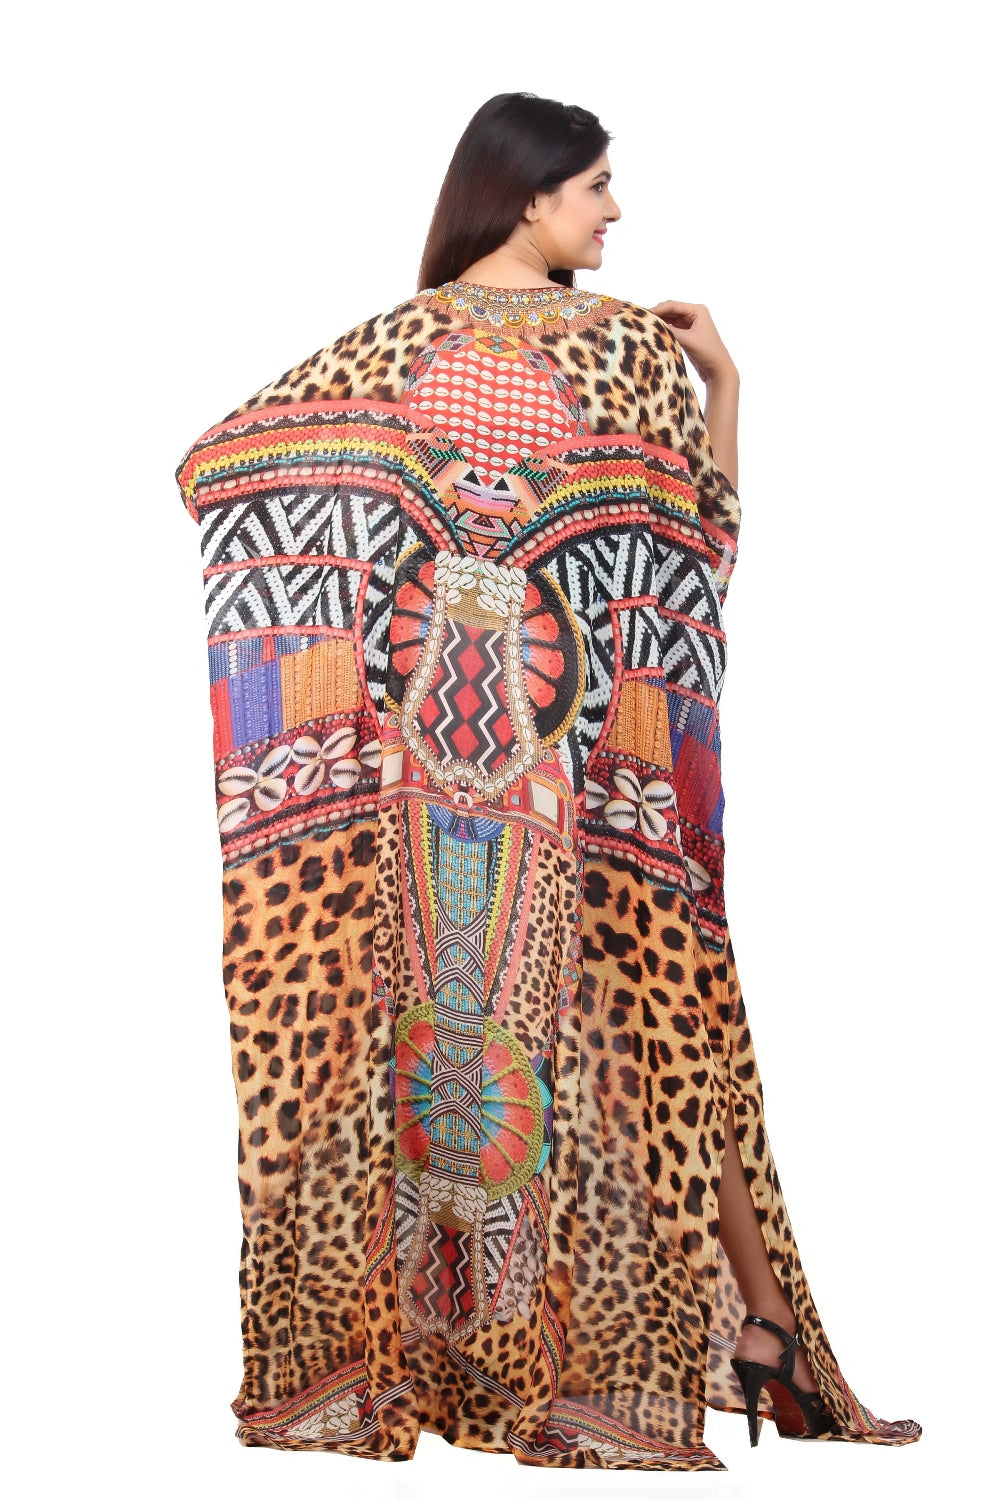 Soft and Downy alike Leopard print Long Designer Silk Kaftan with Clam-shell patterns pool party kaftan - Silk kaftan